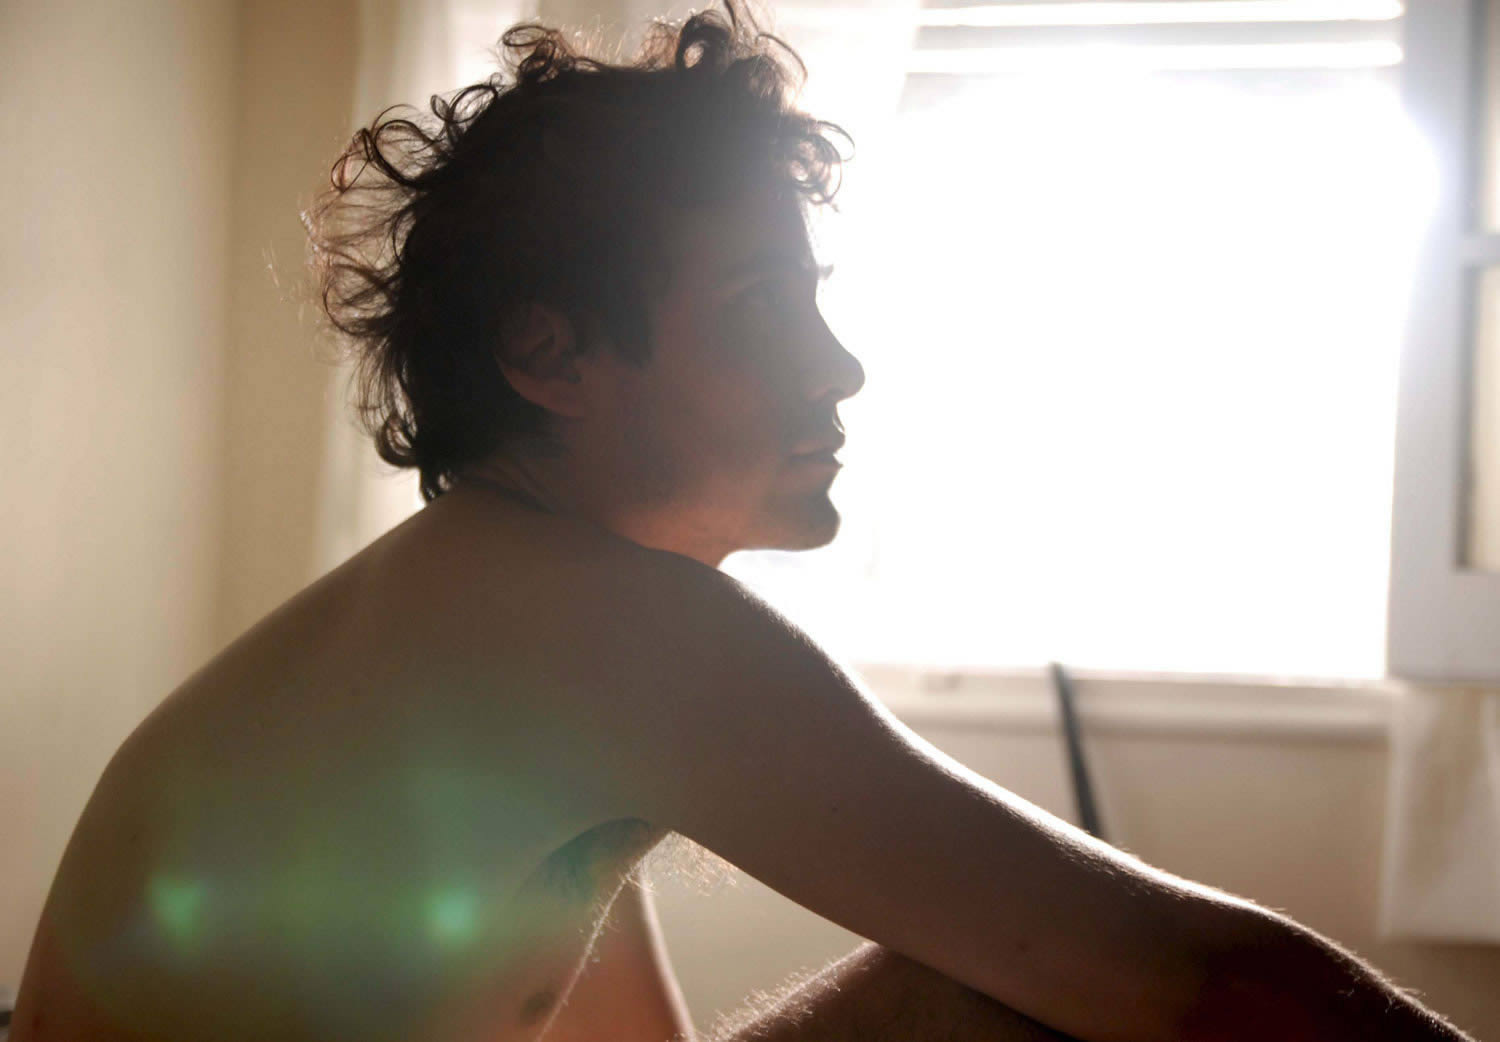 profile of man with sun from the window shining on him, Leo's Room